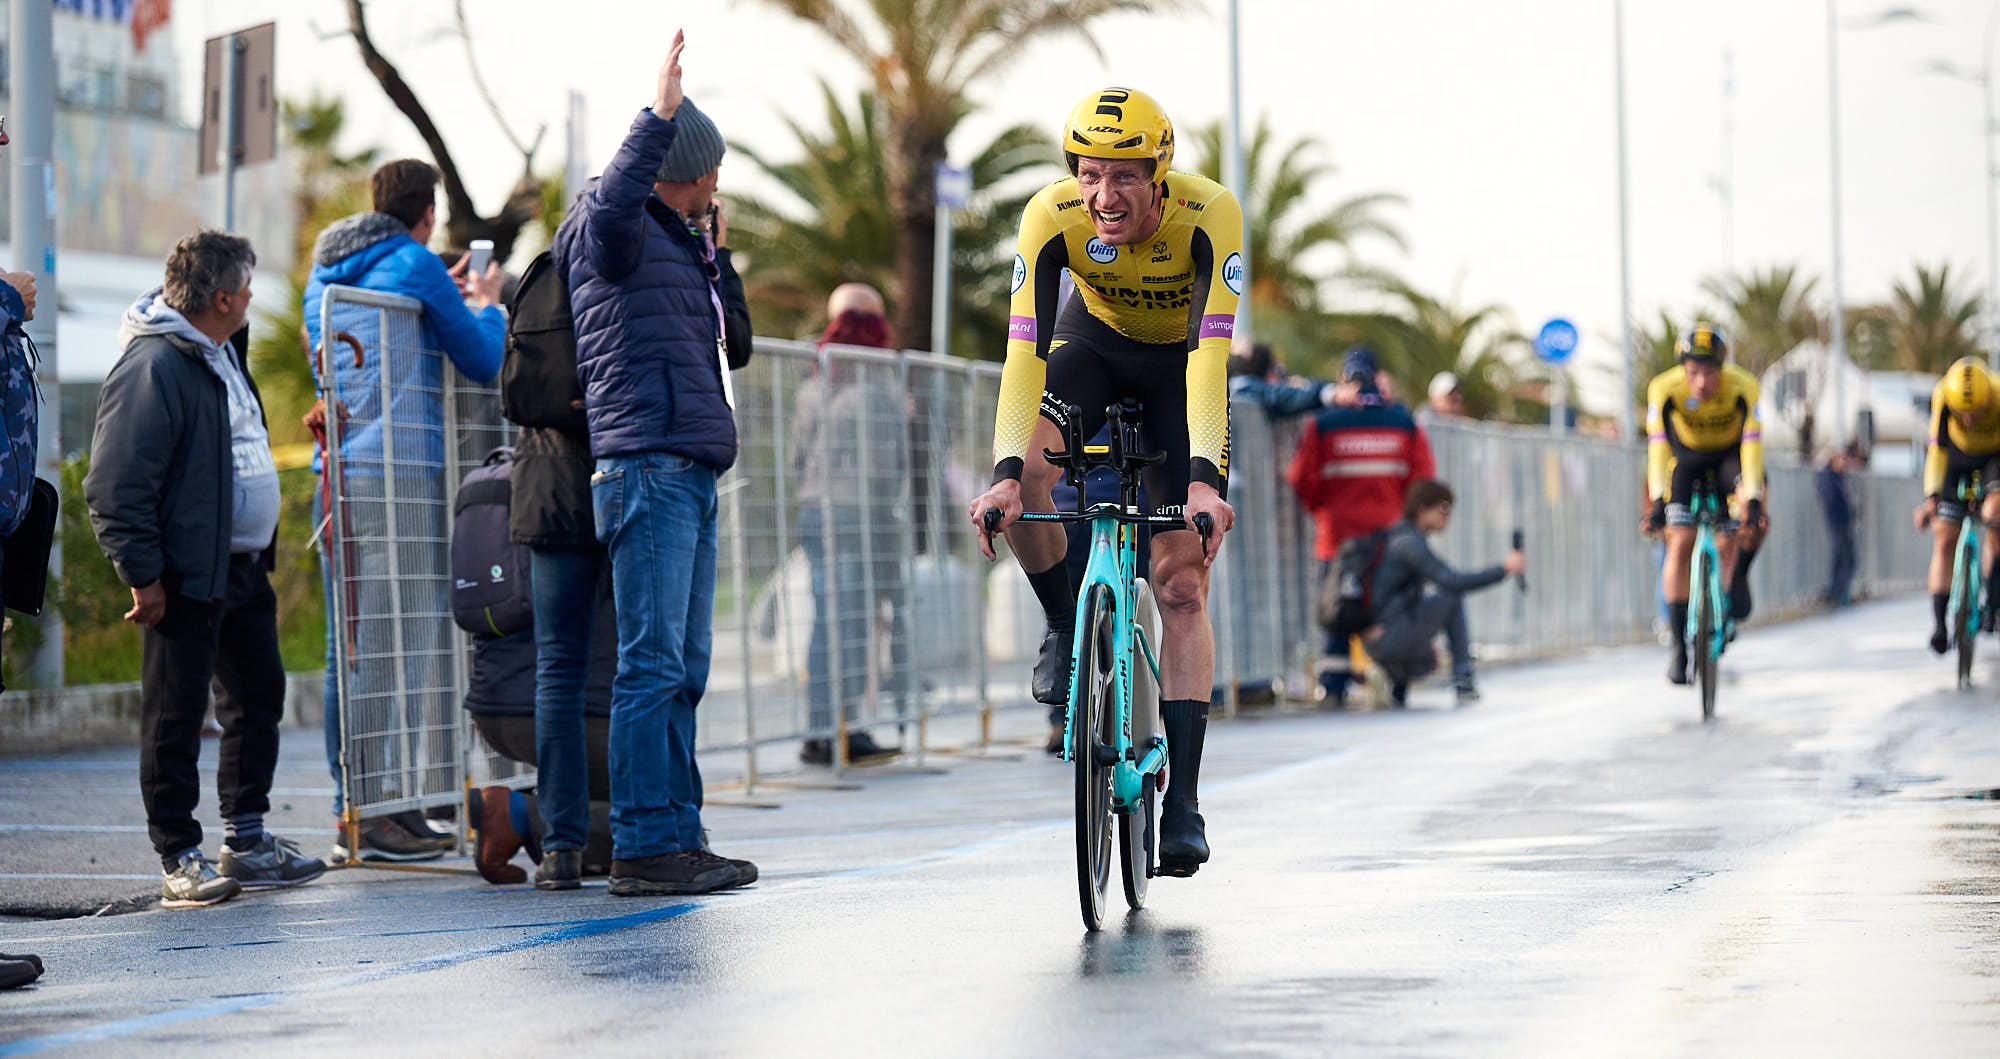 Jos van Emden just after finishing the team time trial in Tirreno-Adriatico